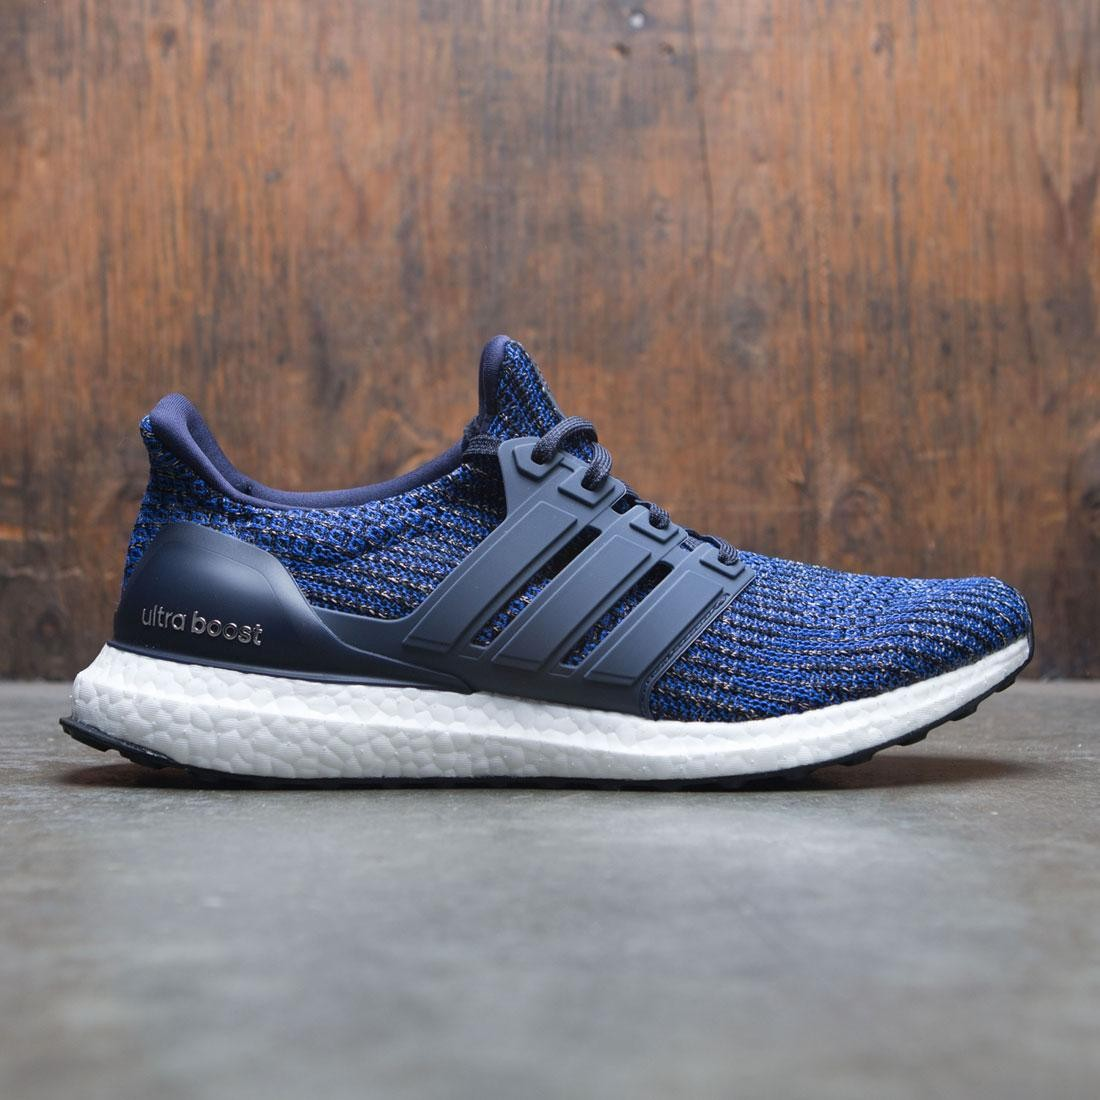 b41a164a2e3 Adidas Men UltraBOOST blue carbon legend ink core black